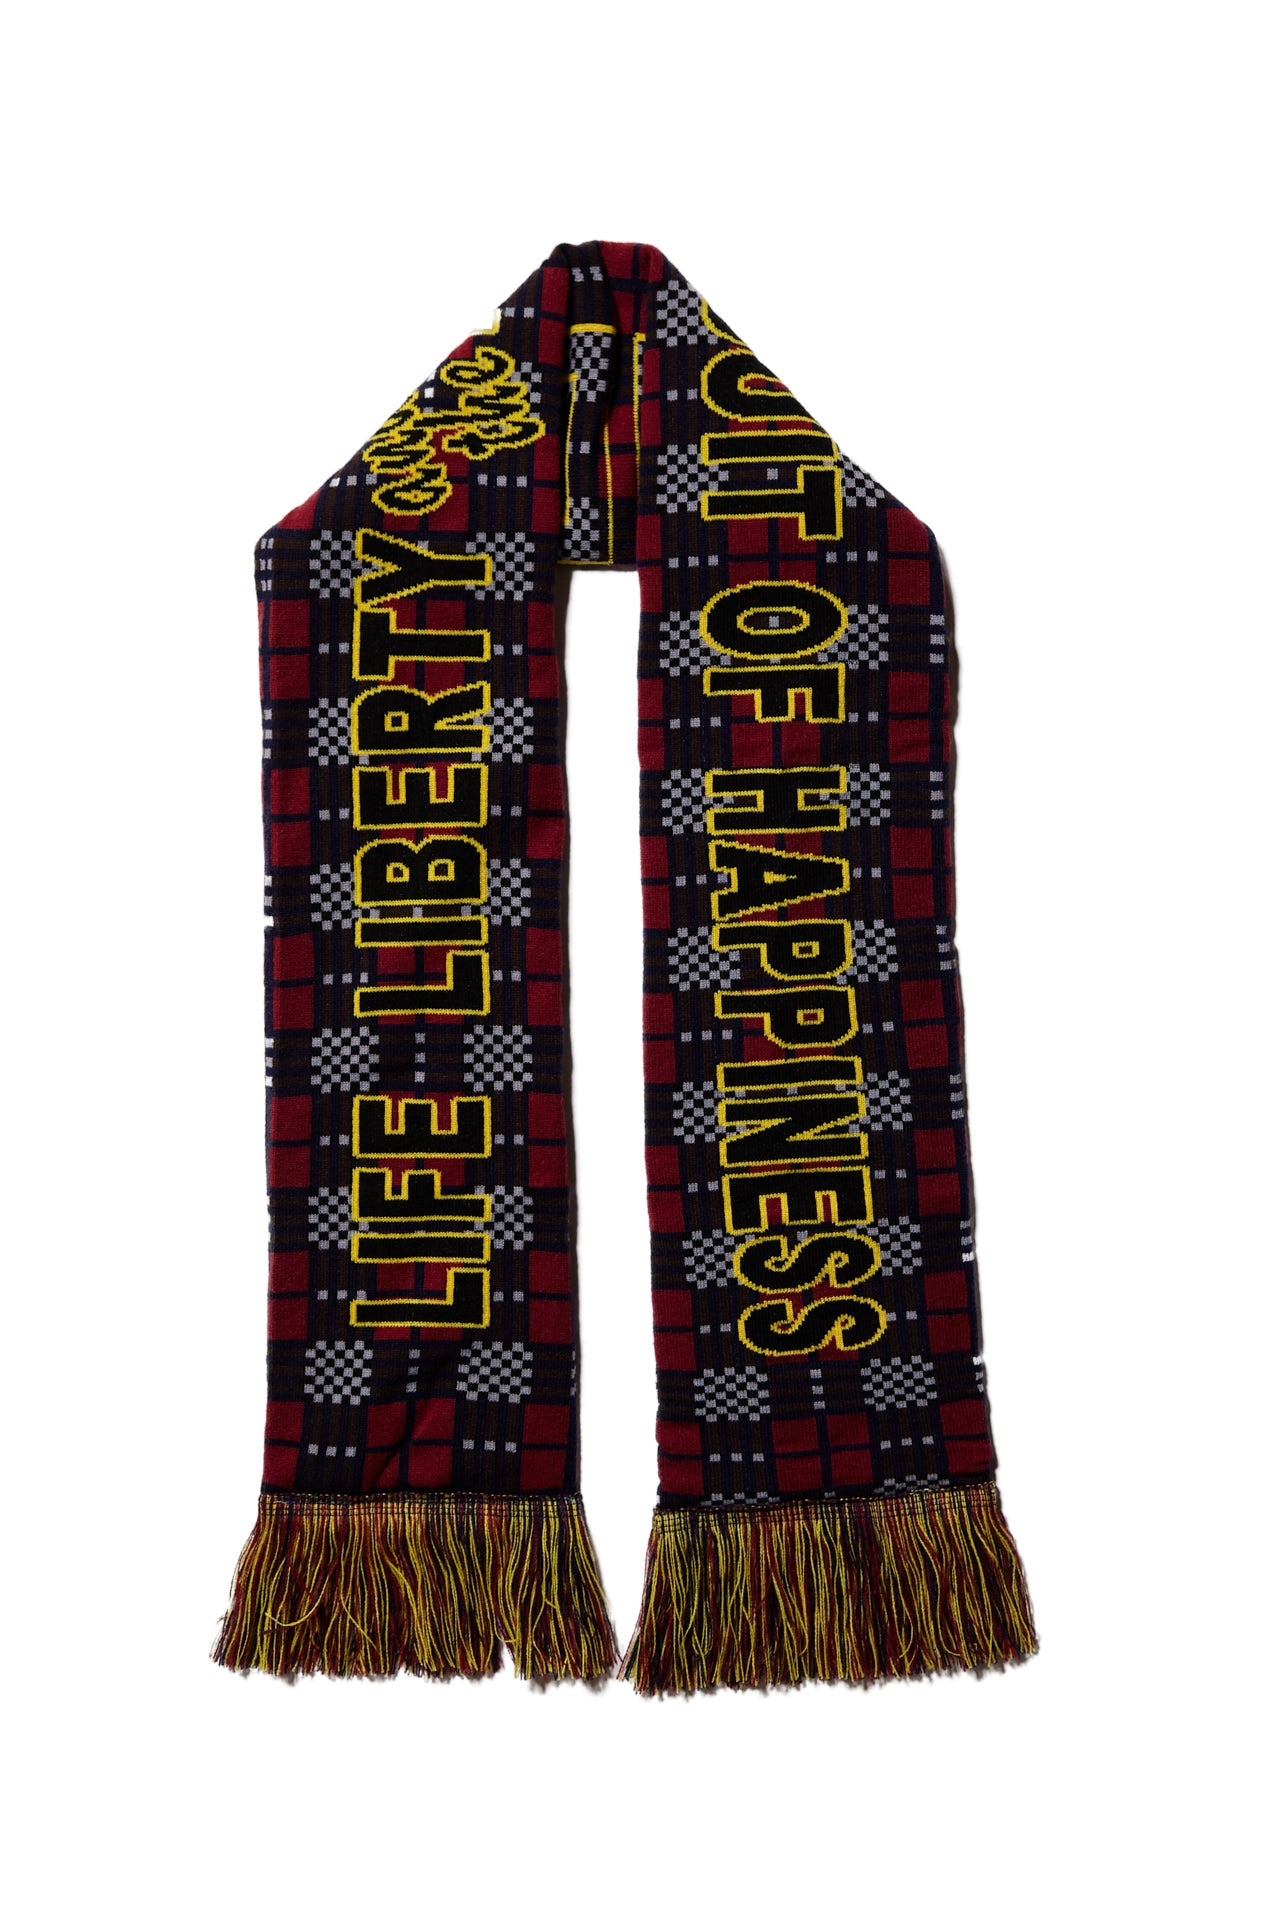 LIFE LIBERTY AND THE PURSUIT OF HAPPINESS STADIUM SCARF